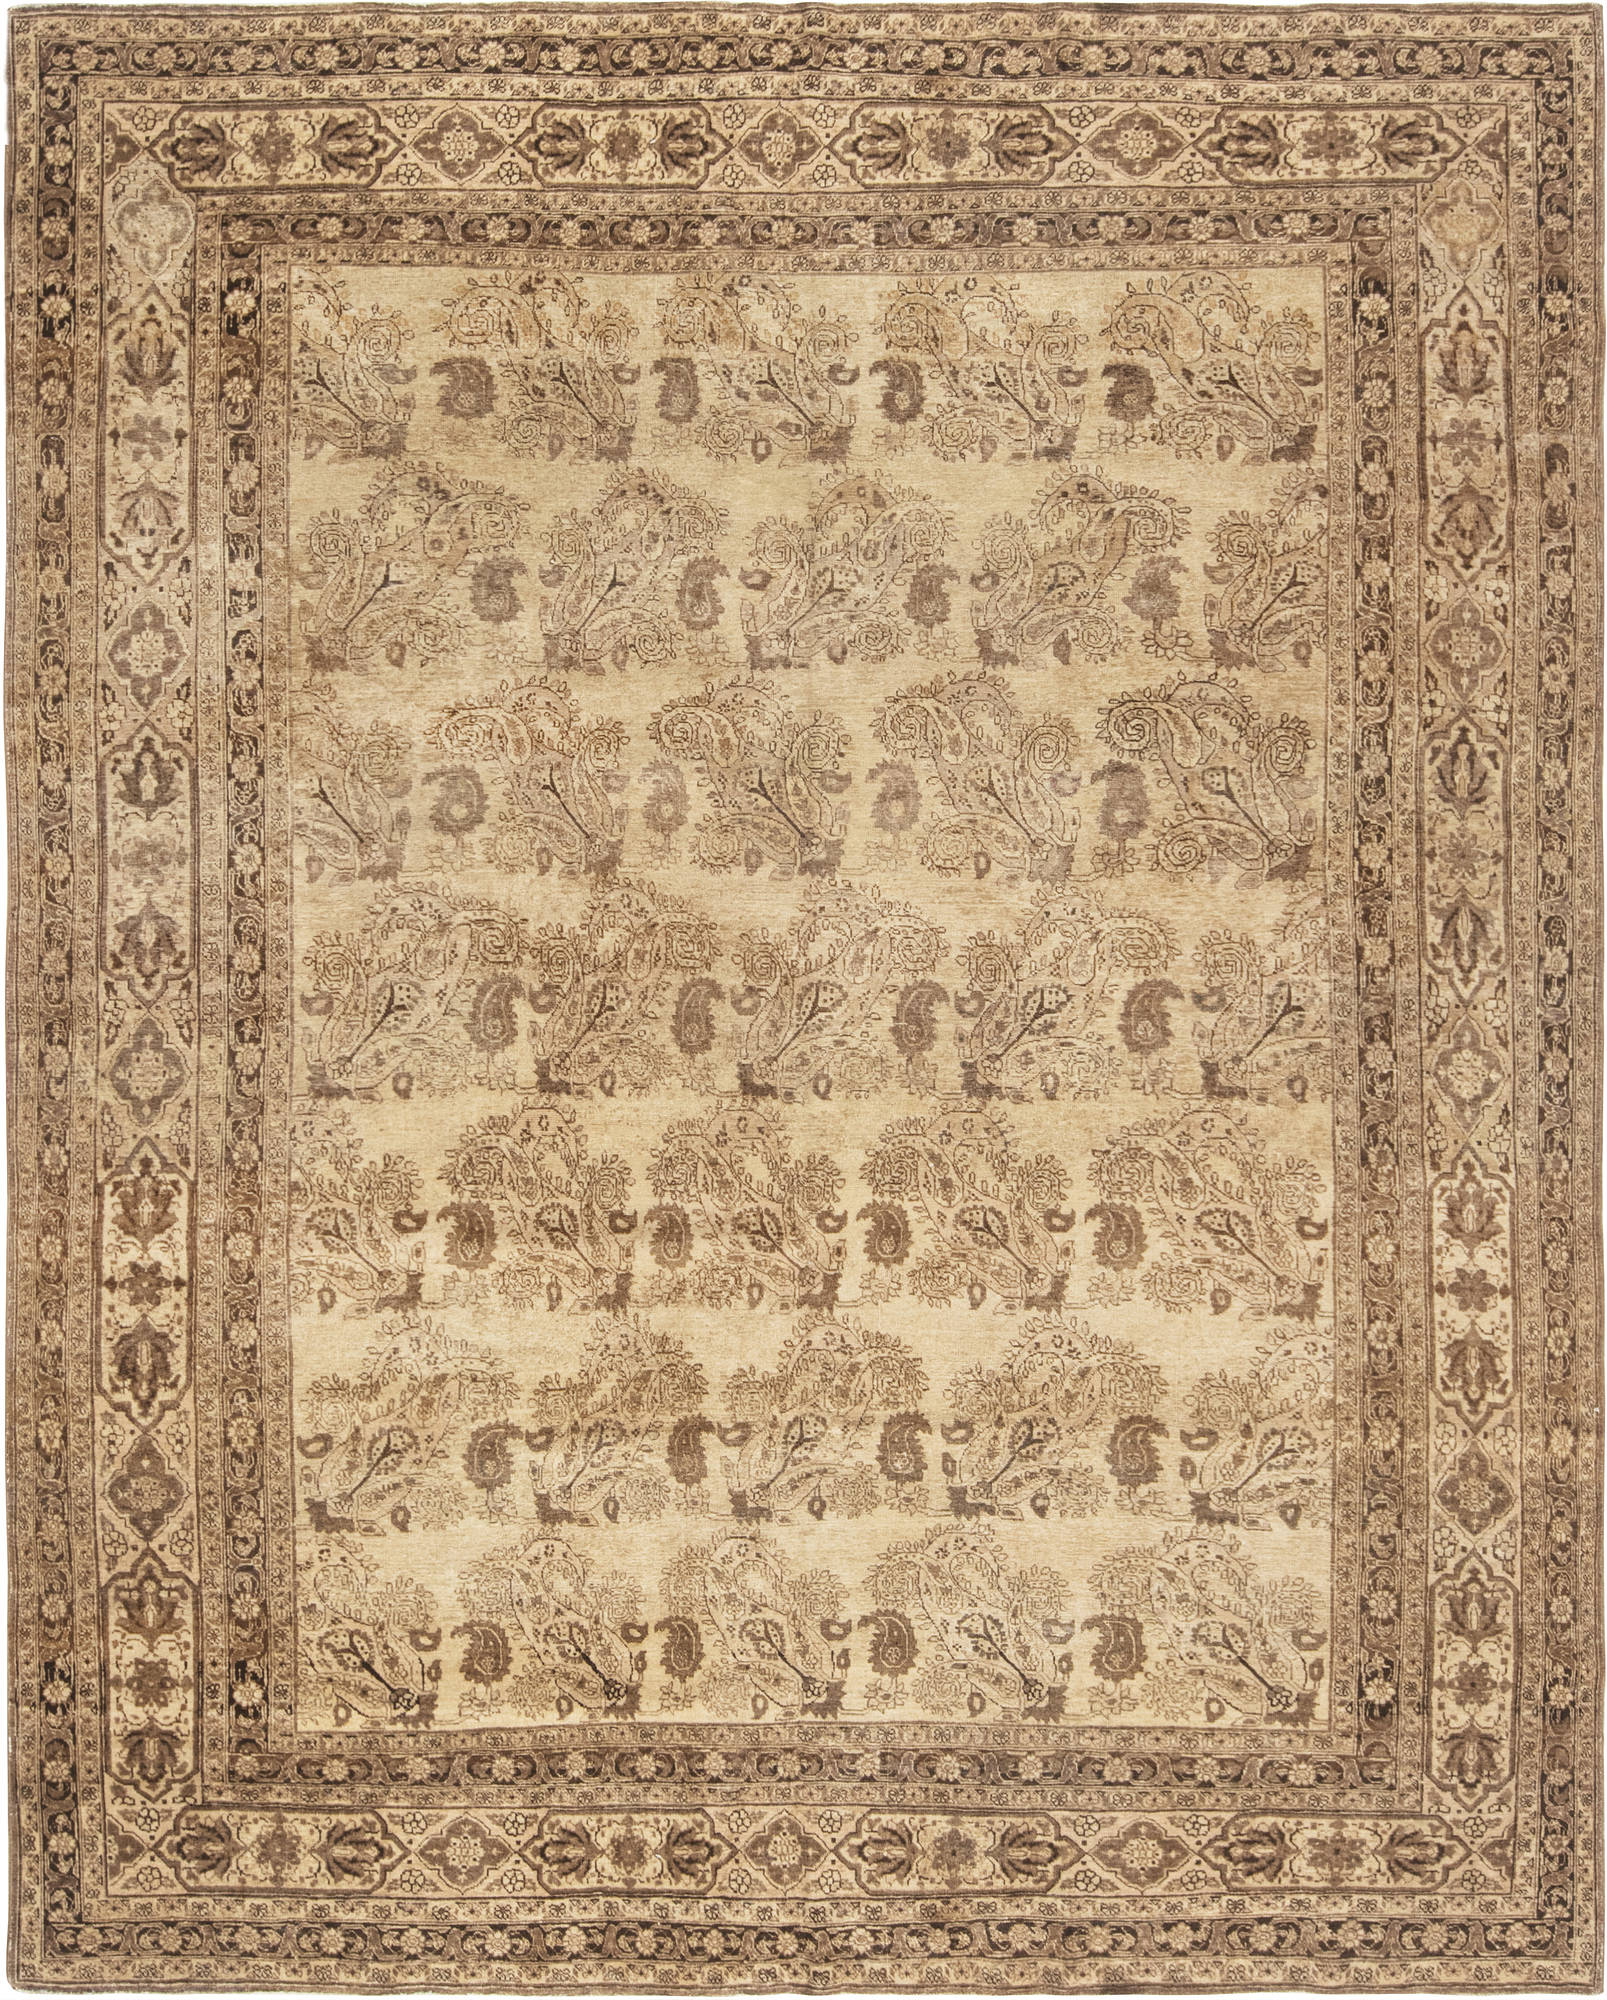 Antique Persian Tabriz Rug BB6608